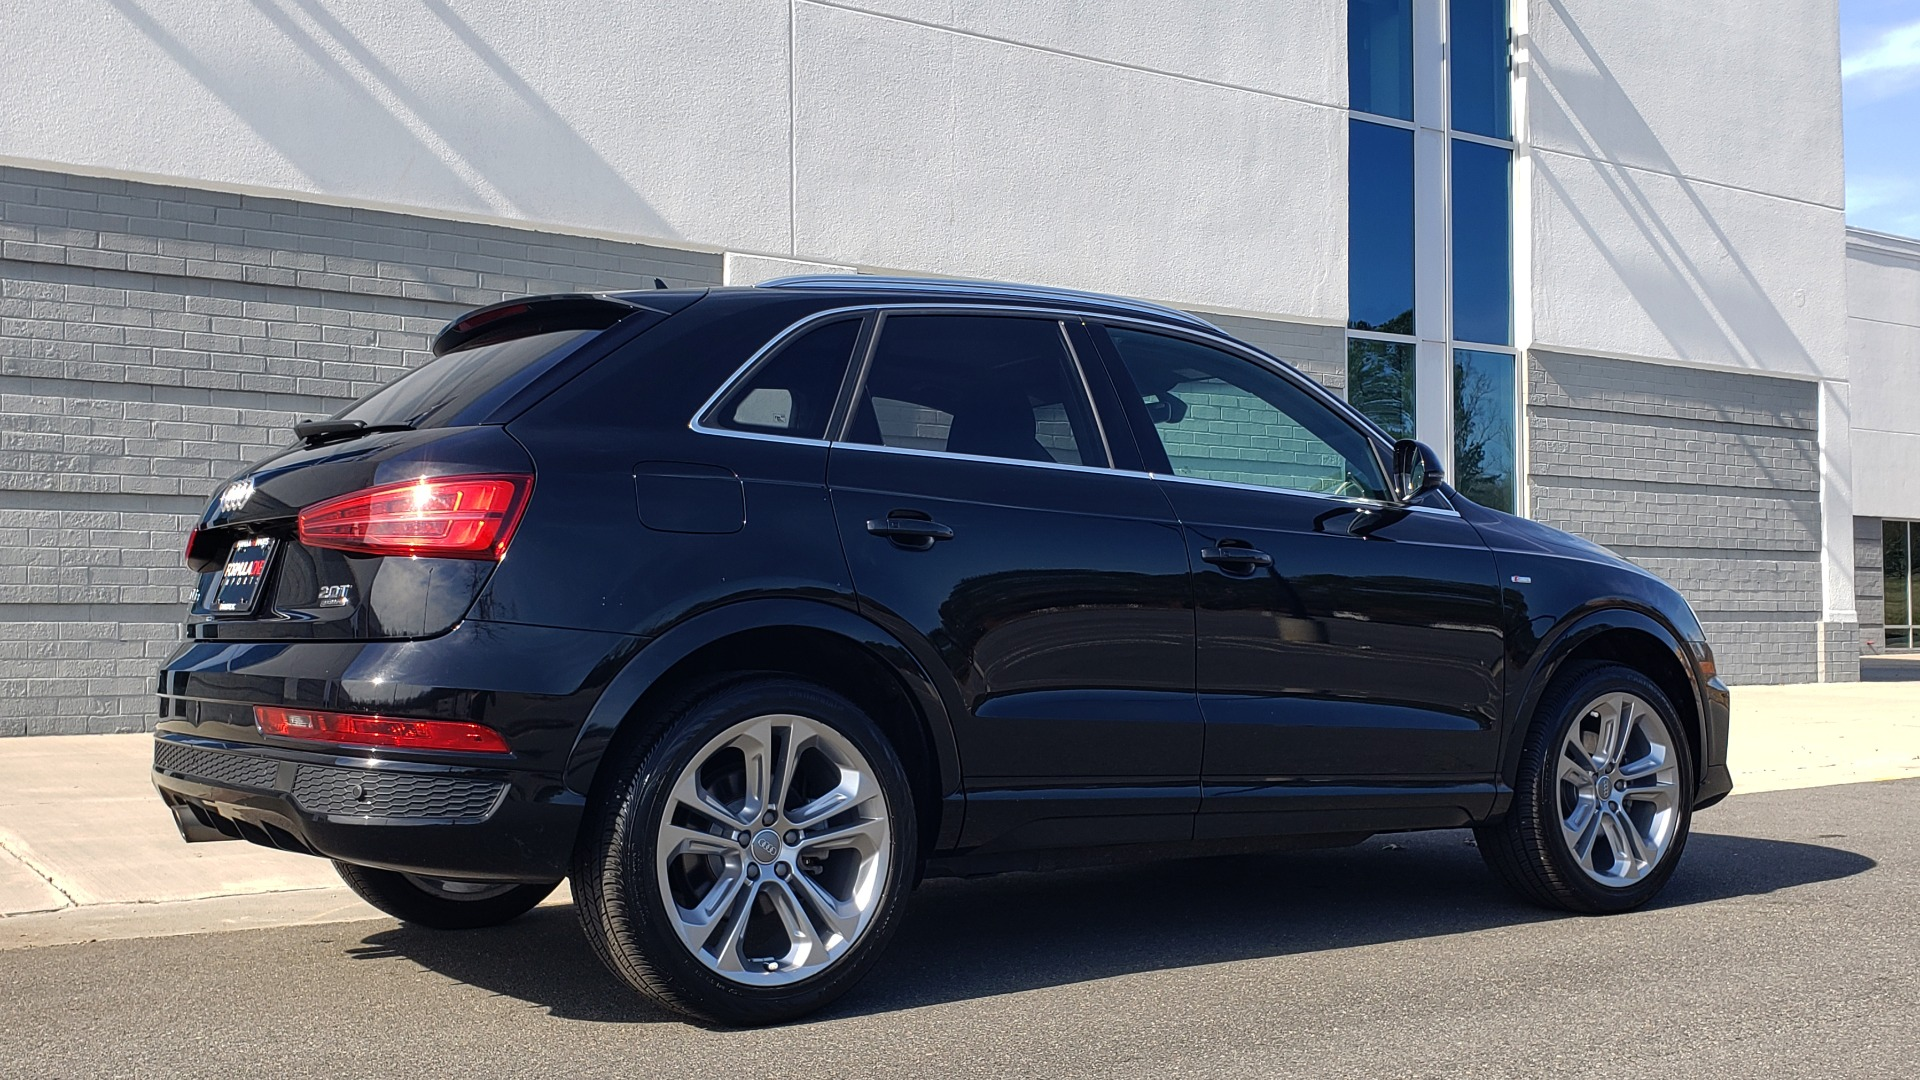 Used 2018 Audi Q3 SPORT PREMIUM PLUS / TECHNOLOGY / SUNROOF / BOSE / REARVIEW for sale Sold at Formula Imports in Charlotte NC 28227 6